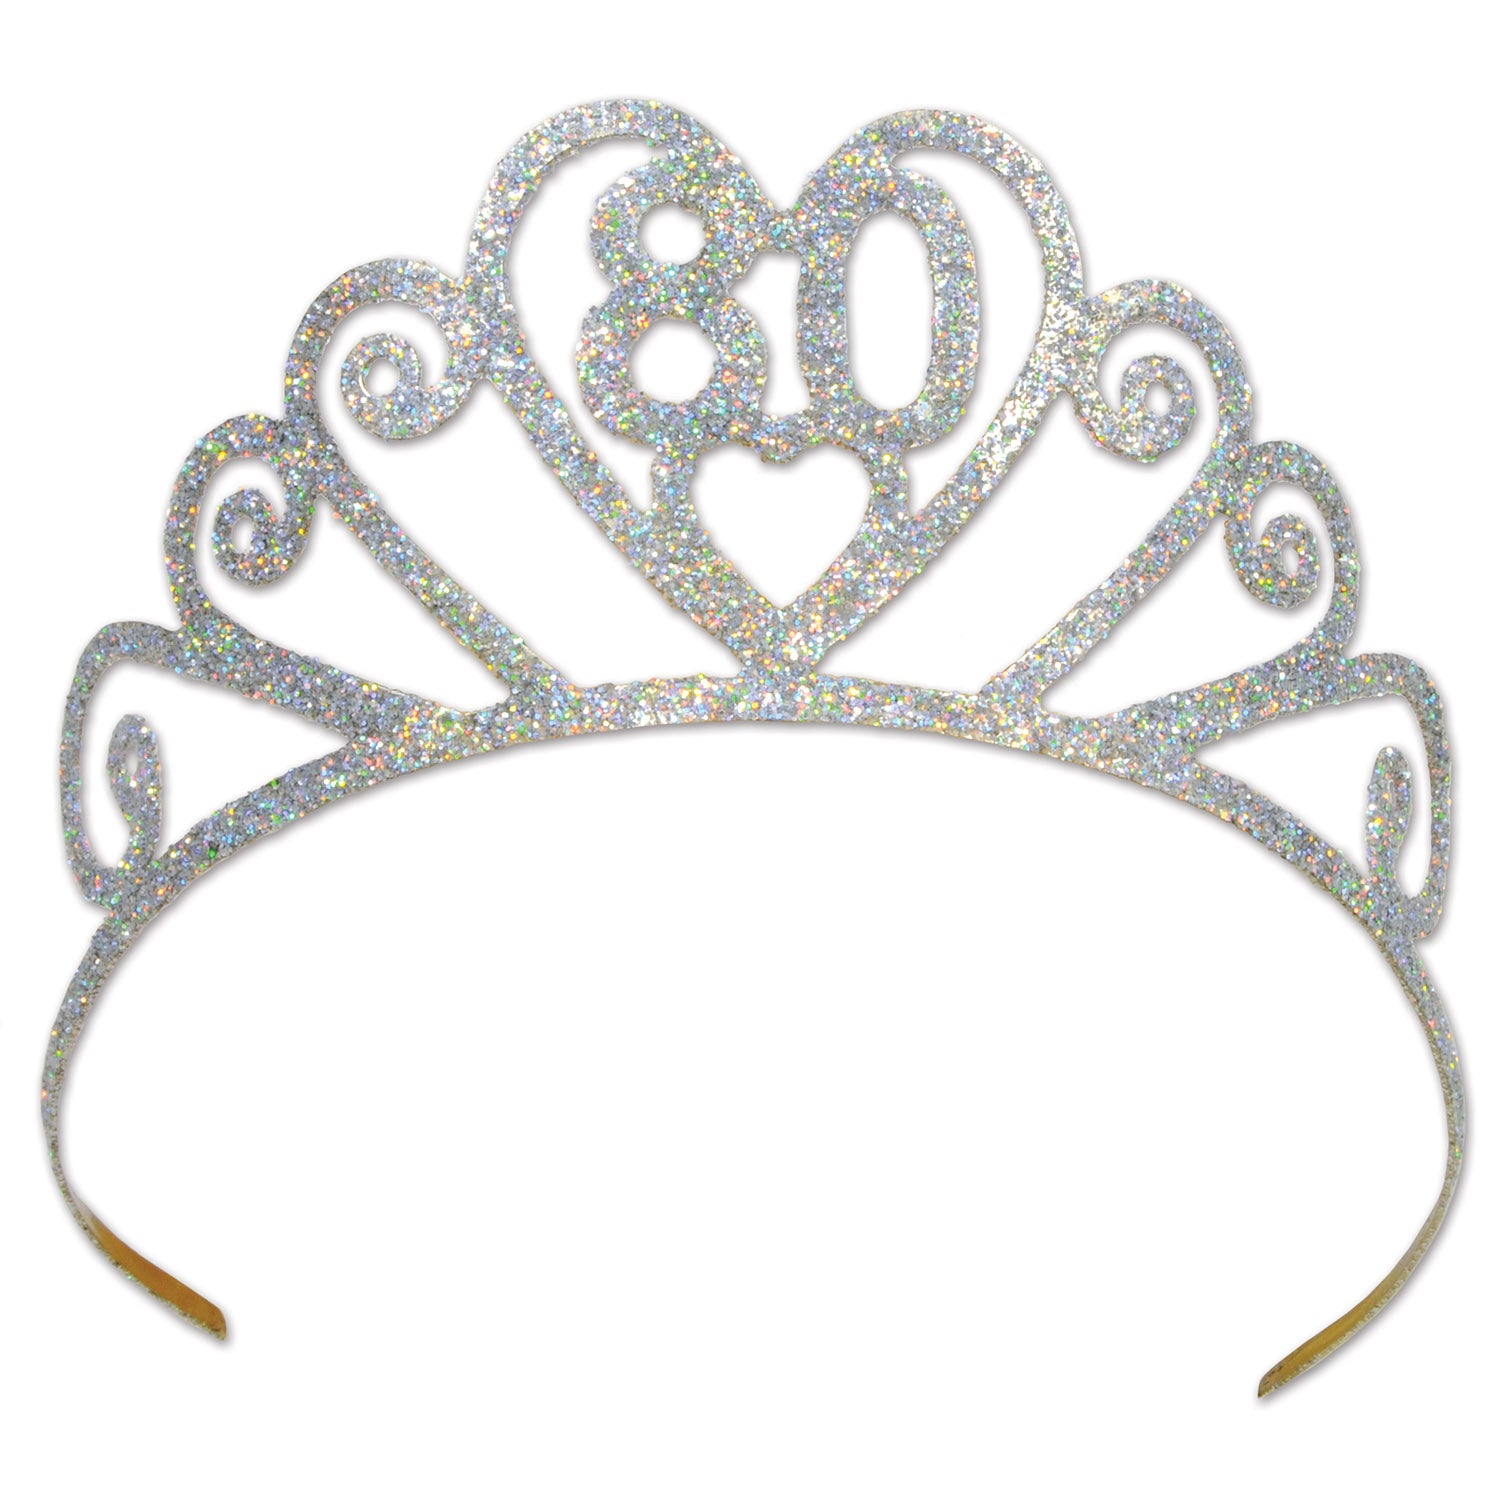 Glittered Metal 80 Tiara by Beistle - 80th Birthday Party Decorations